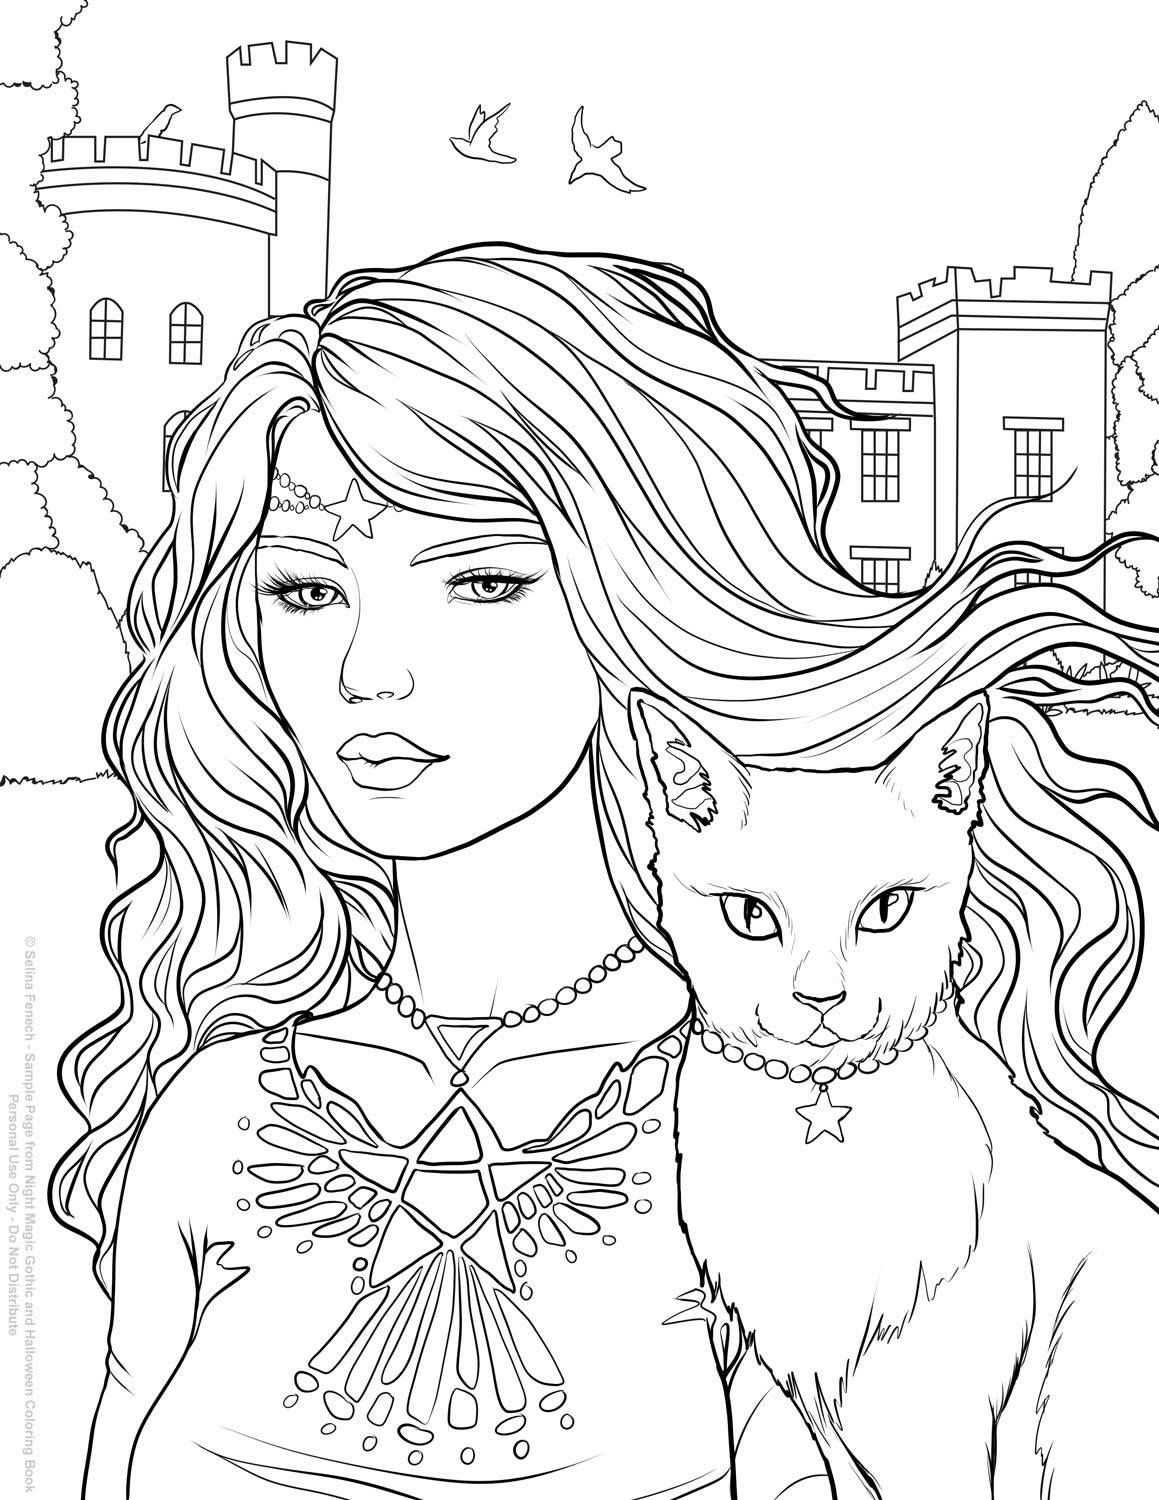 Ausmalbilder Halloween Kostenlos : Halloween Selina Fenech Fantasy Coloring Pages For Adults